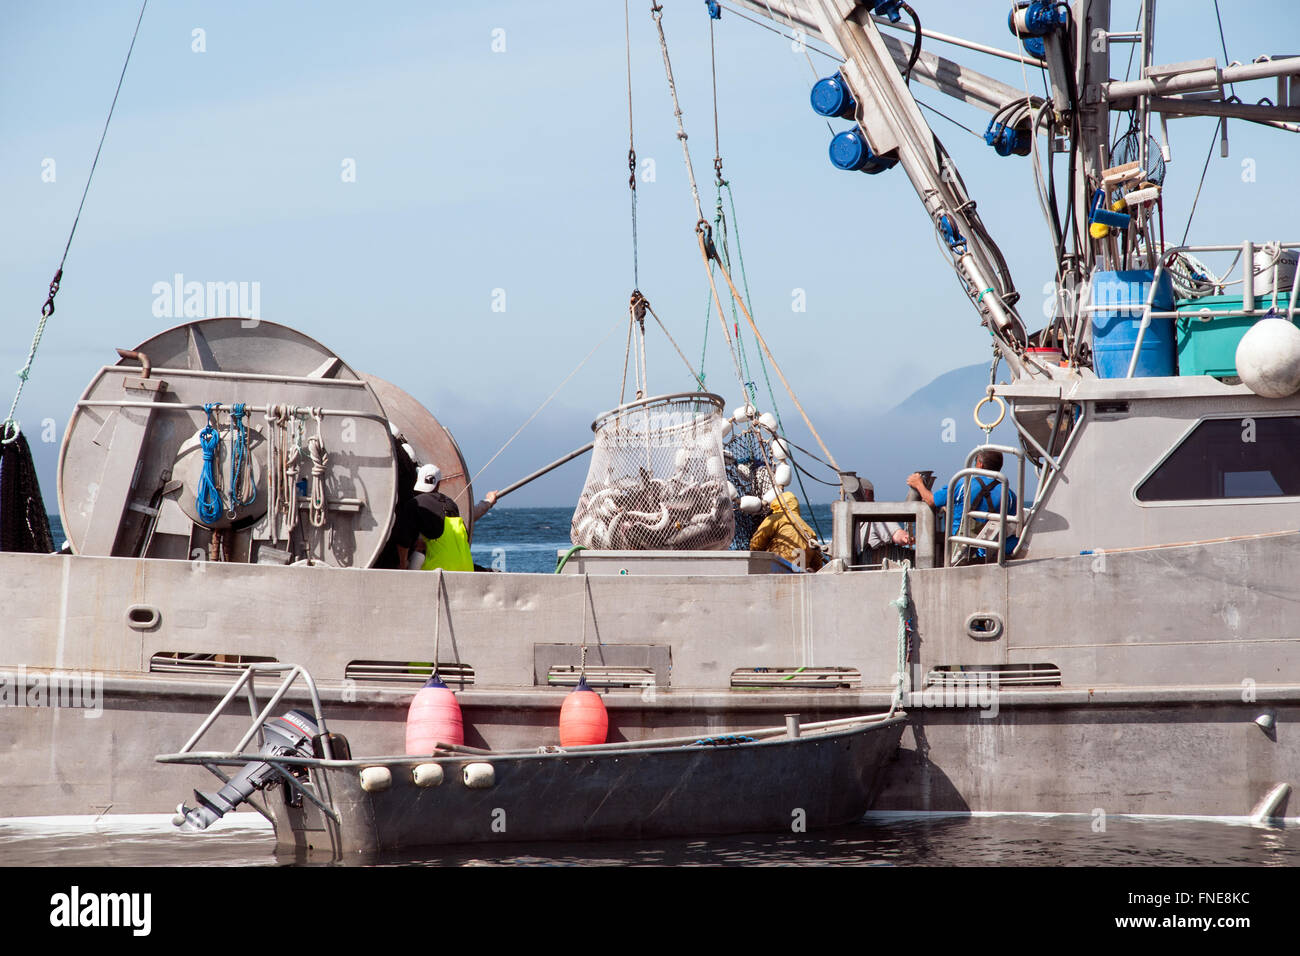 A wild salmon gillnet fishing boat in the Great Bear Rainforest region on the North Pacific coast of British Columbia, - Stock Image